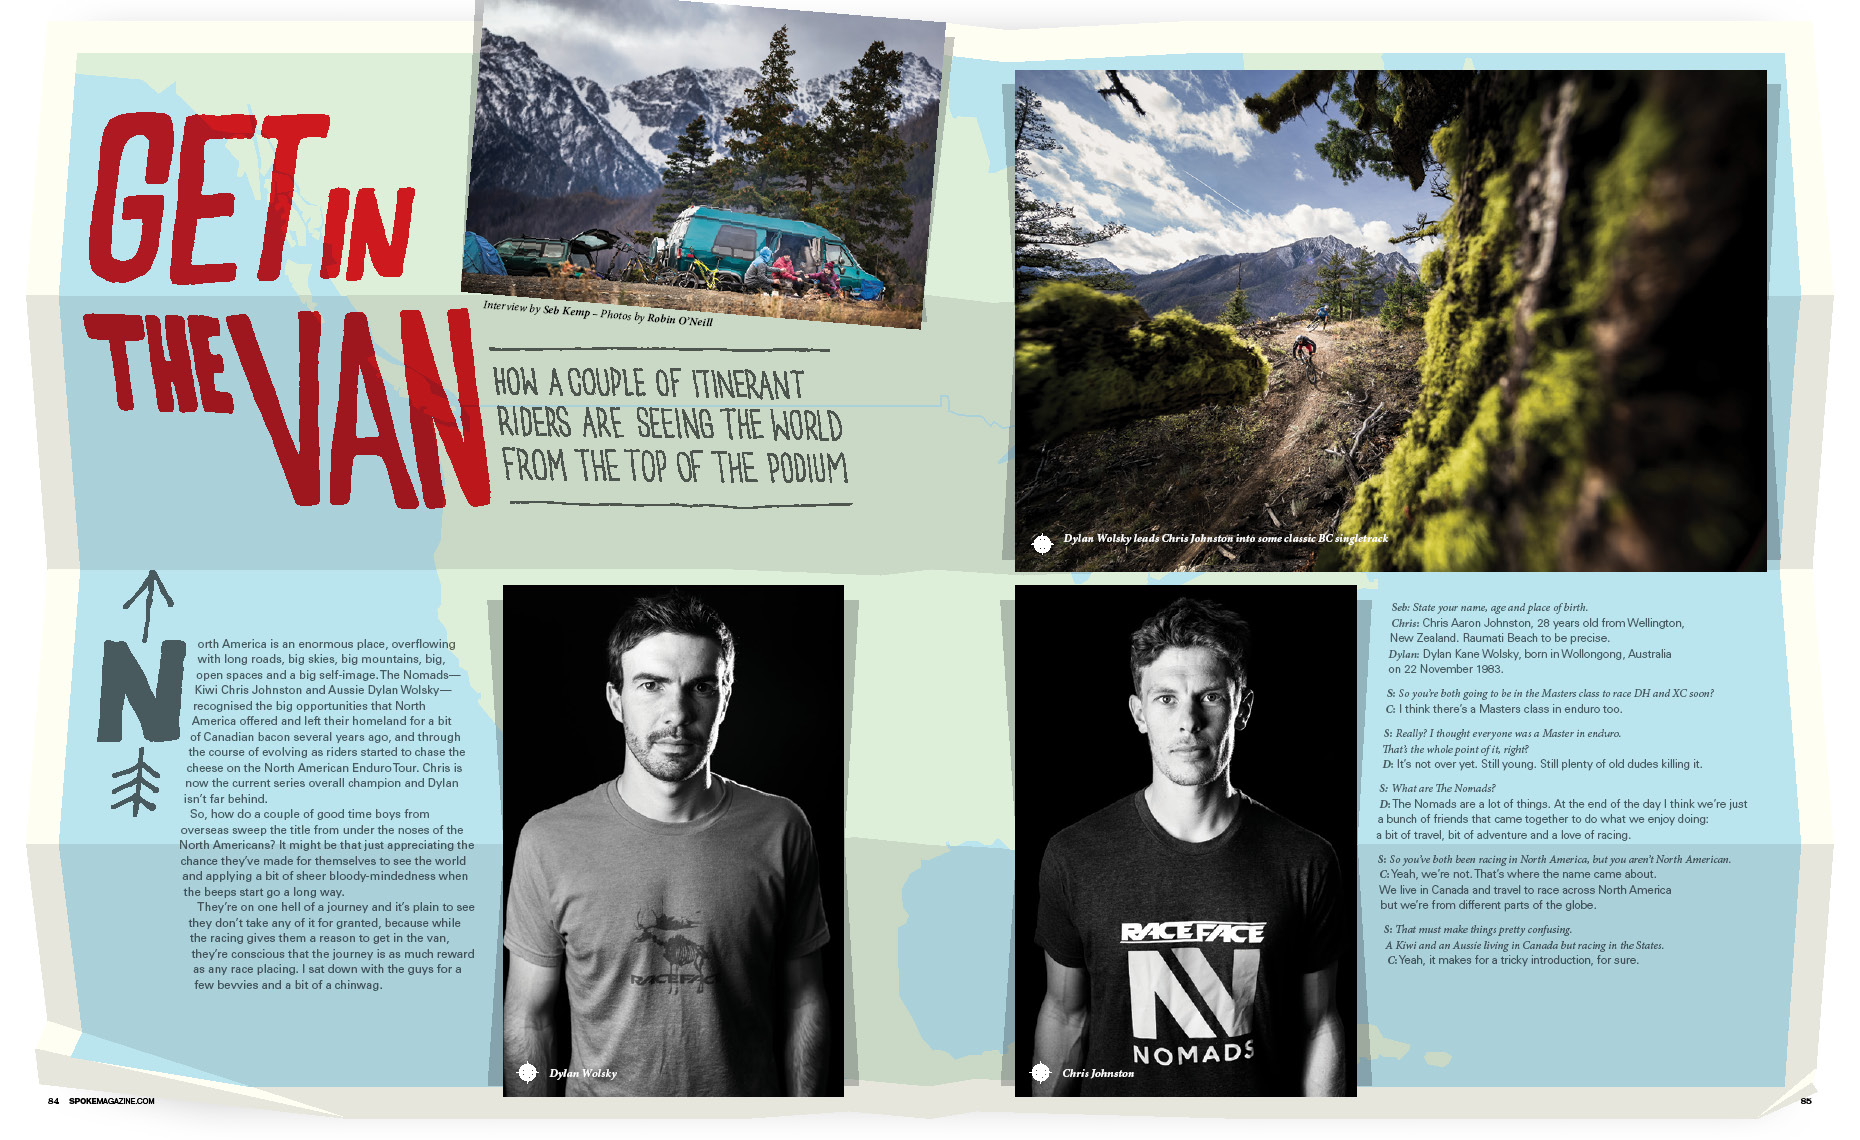 Feature article on dylan and chris nomads mountain bike trip